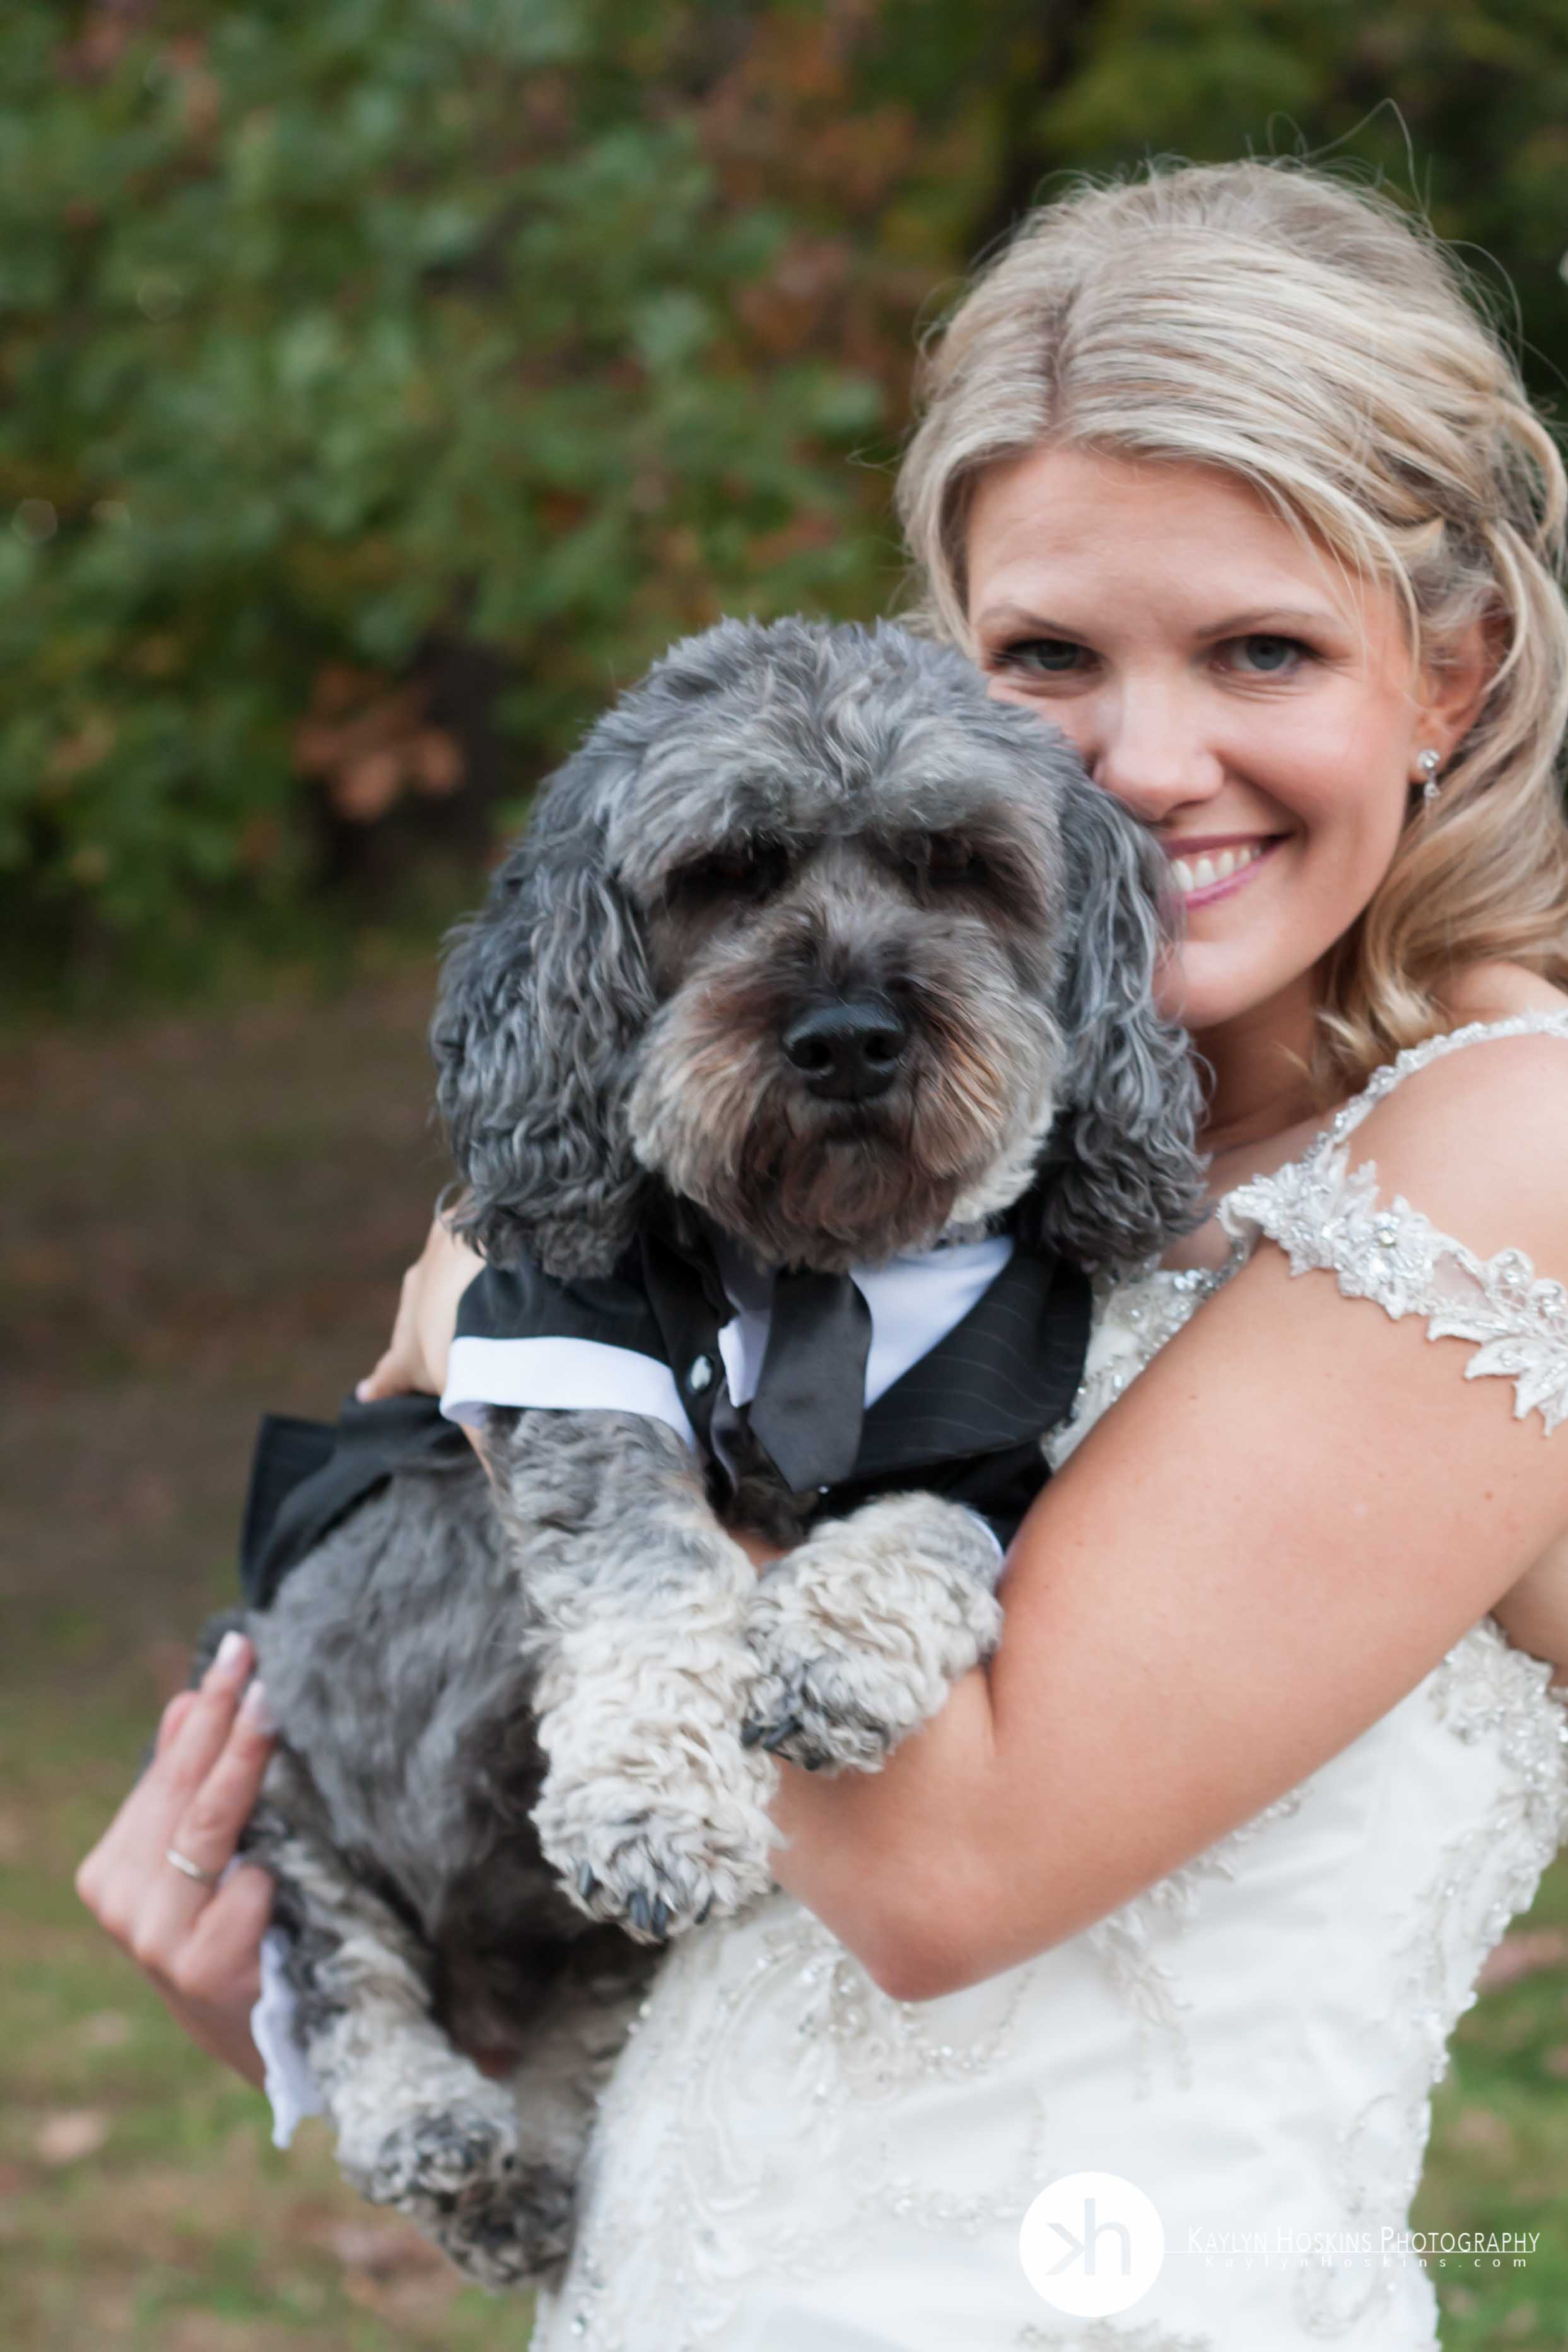 Bride wearing wedding dress holds her dressed up dog during wedding photos in Iowa